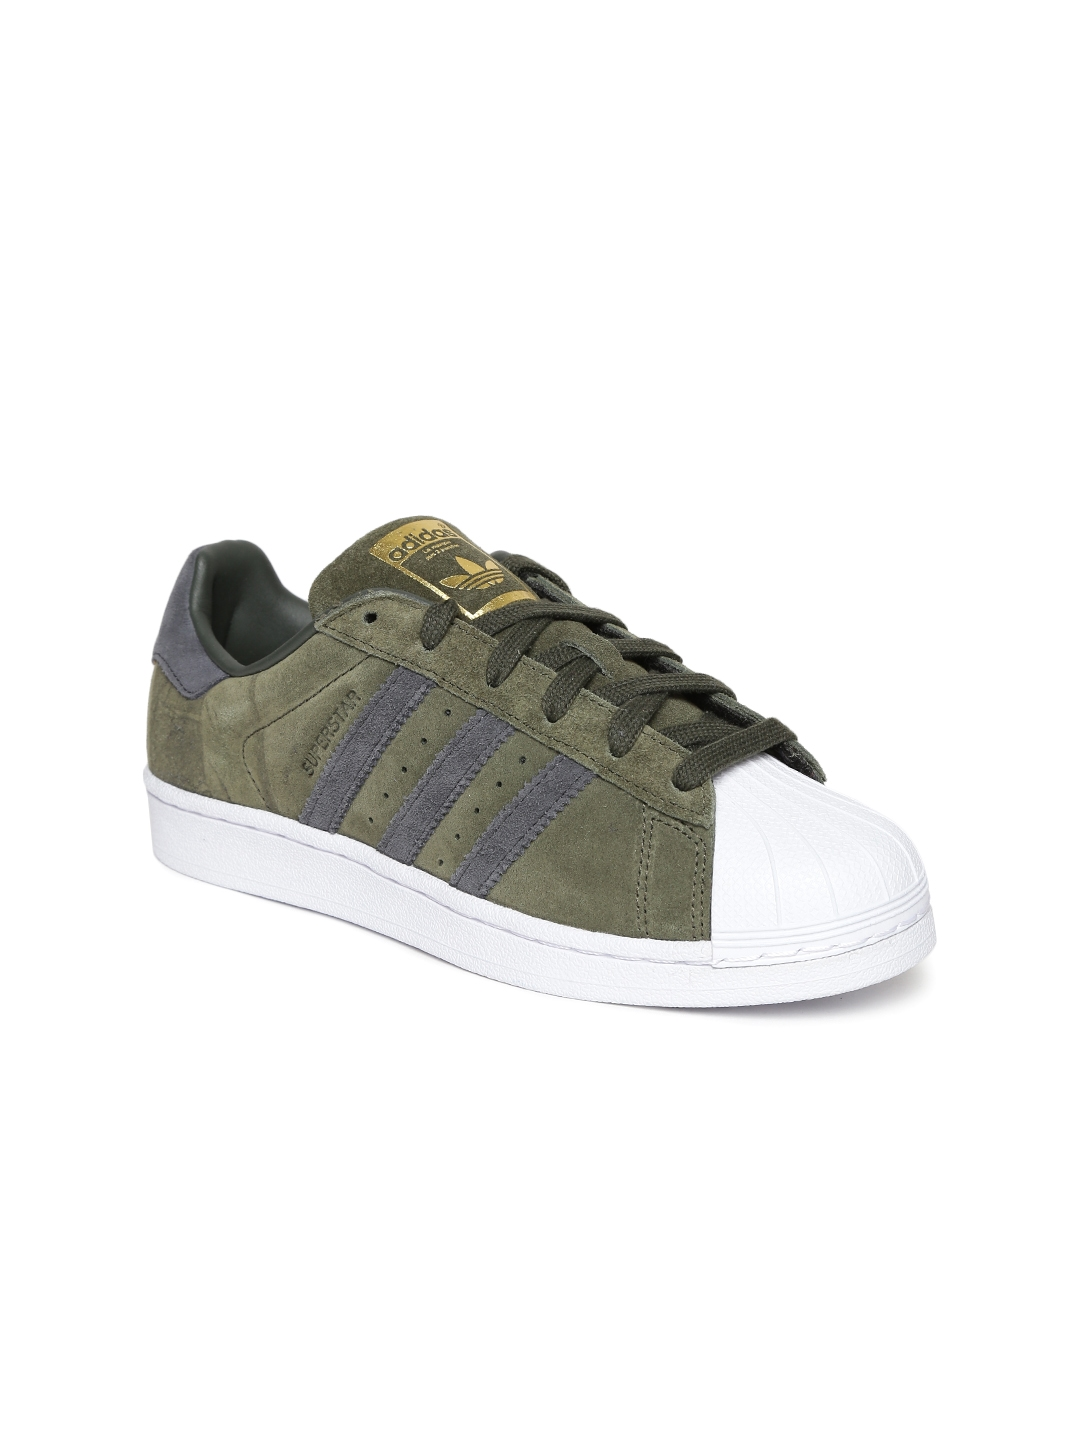 Buy ADIDAS Originals Women Olive Green Superstar Leather Sneakers ... 795c0a1575